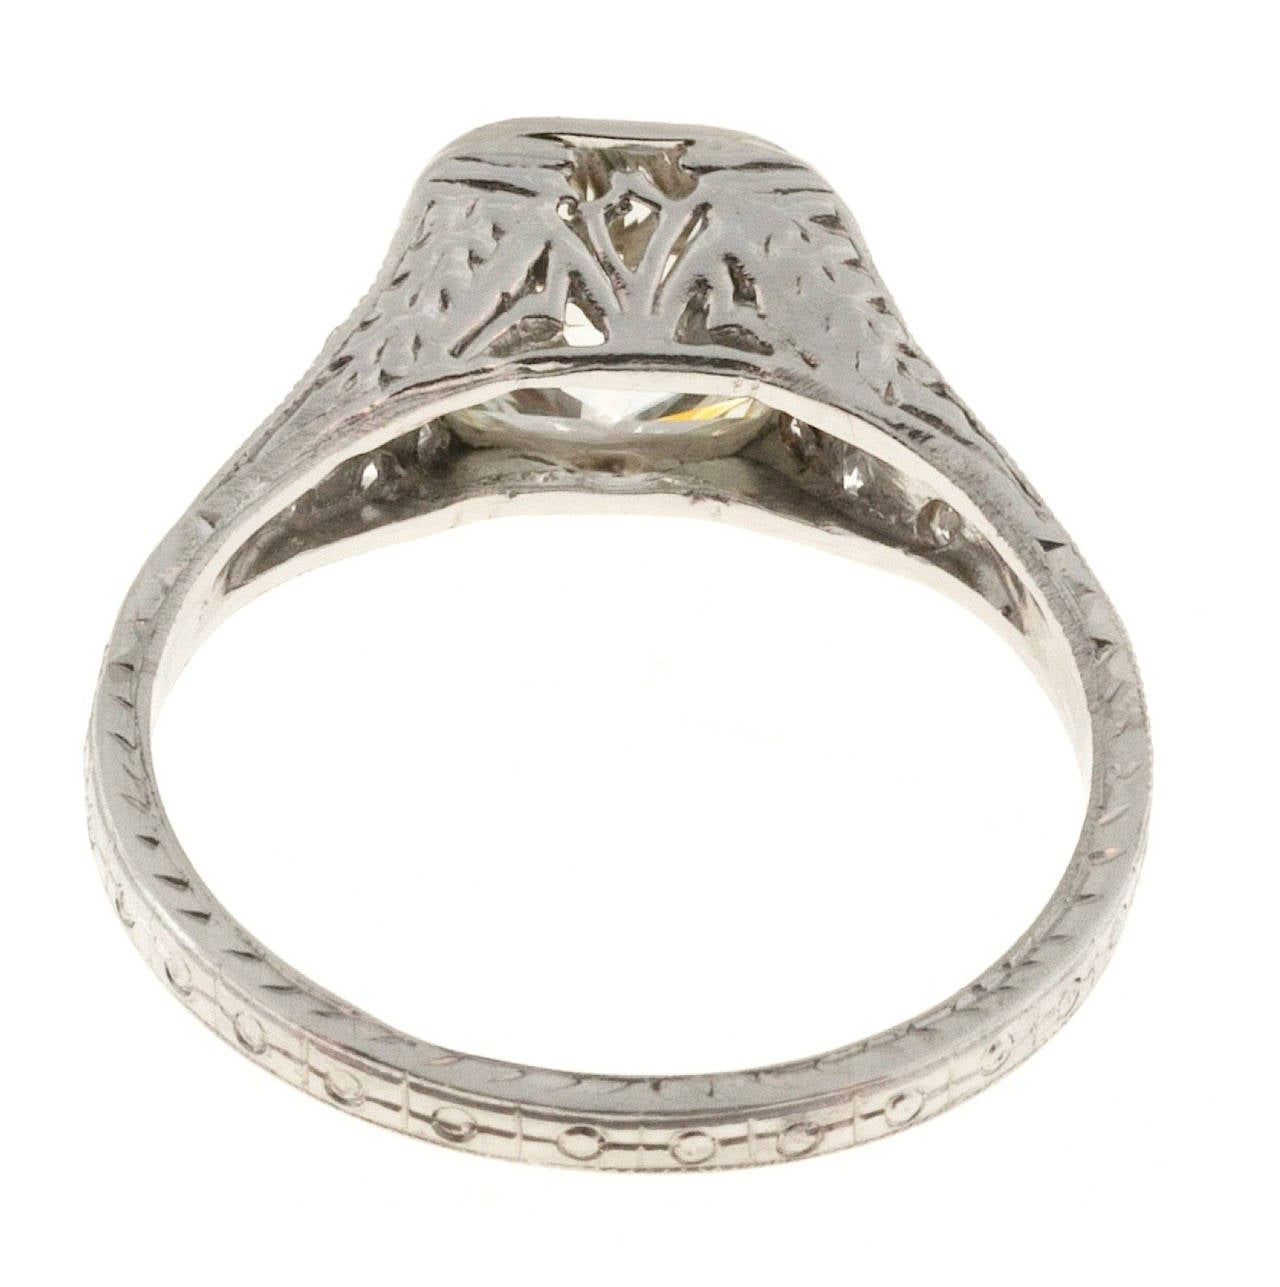 One of the most beautiful 1920's original Platinum ring I have seen in years. Hand engraving and filigree with a world class antique cushion cut super sparkly diamond with raised crown and small table.